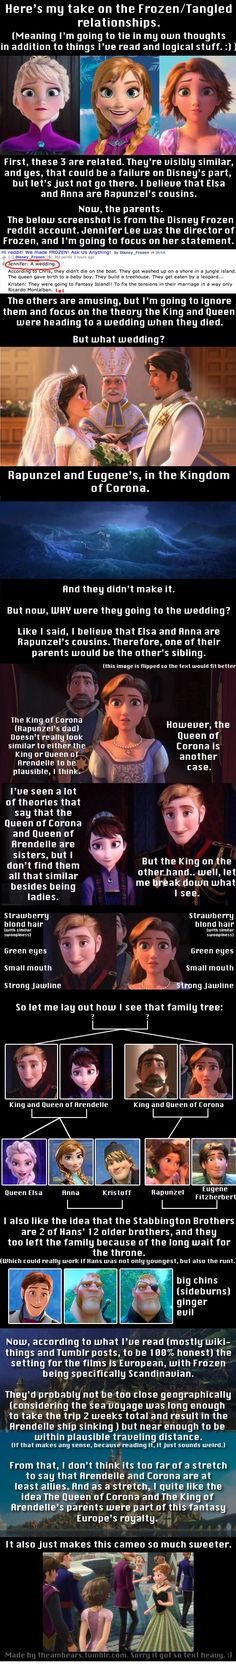 I love this. I especially like the theory of the queen of Corona and the king of Arendelle being siblings, because they look a lot more alike than the queens.